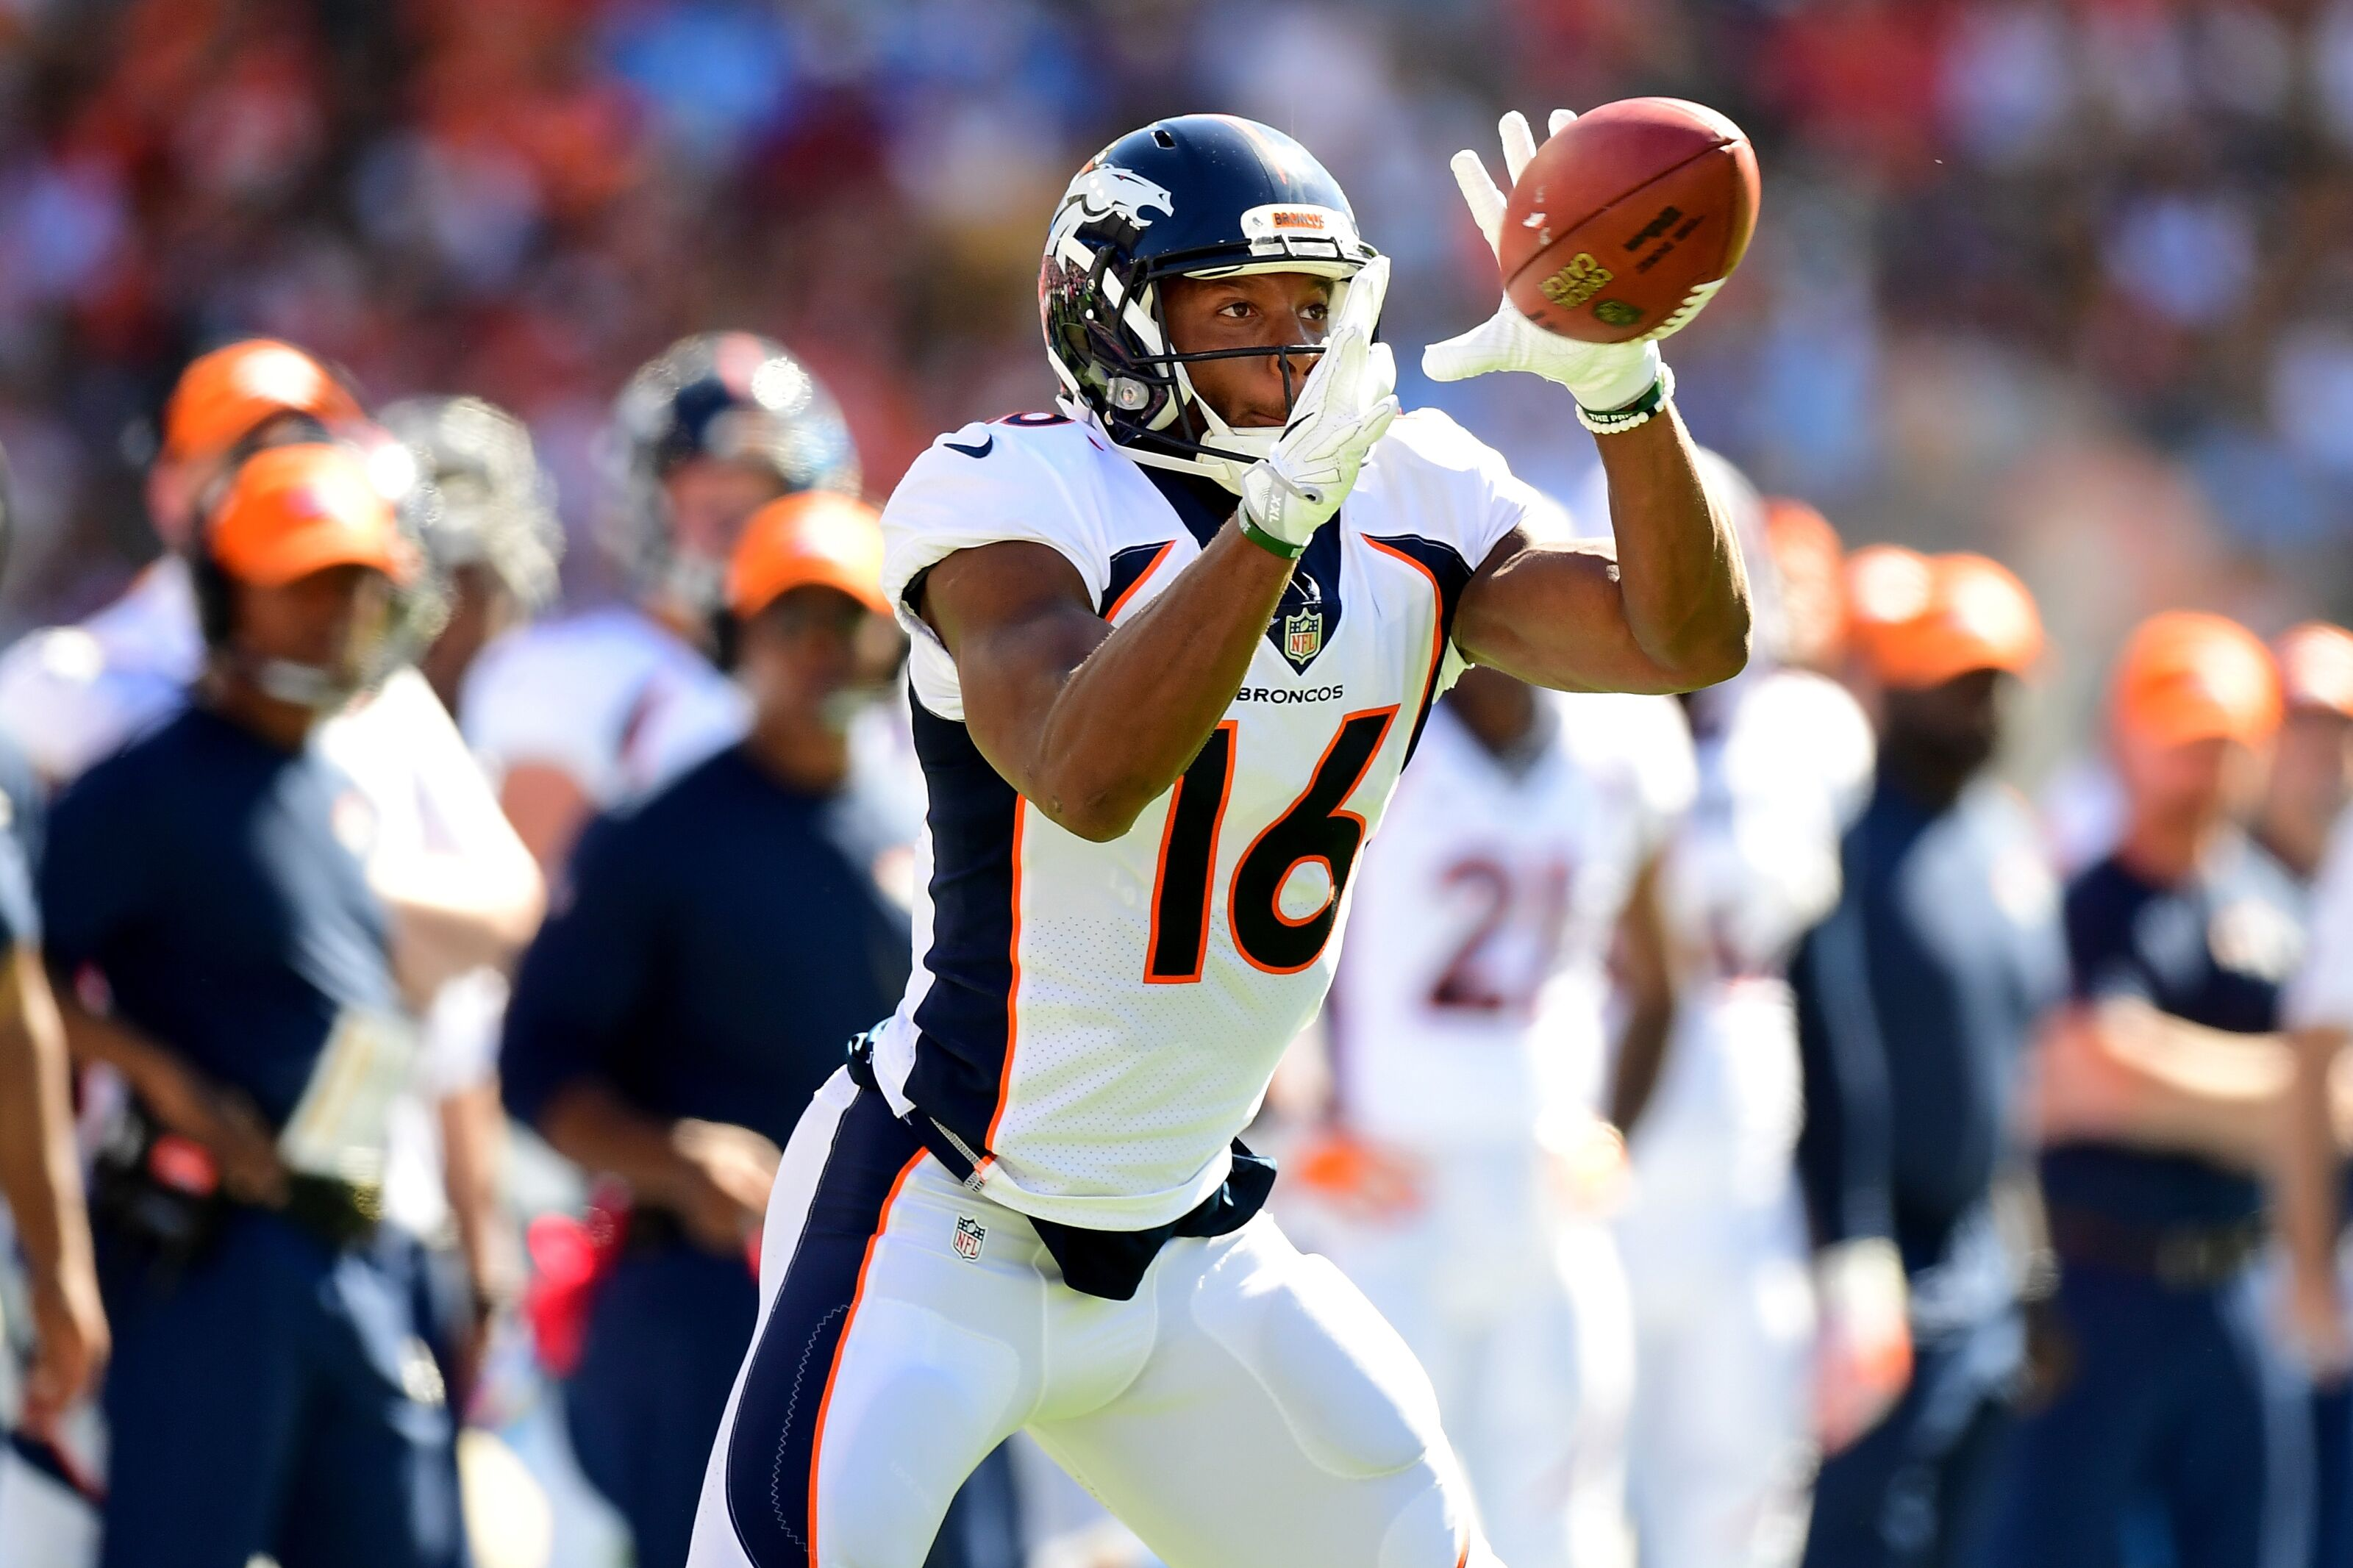 Wideout shuffle continues as New York Giants sign Bennie Fowler